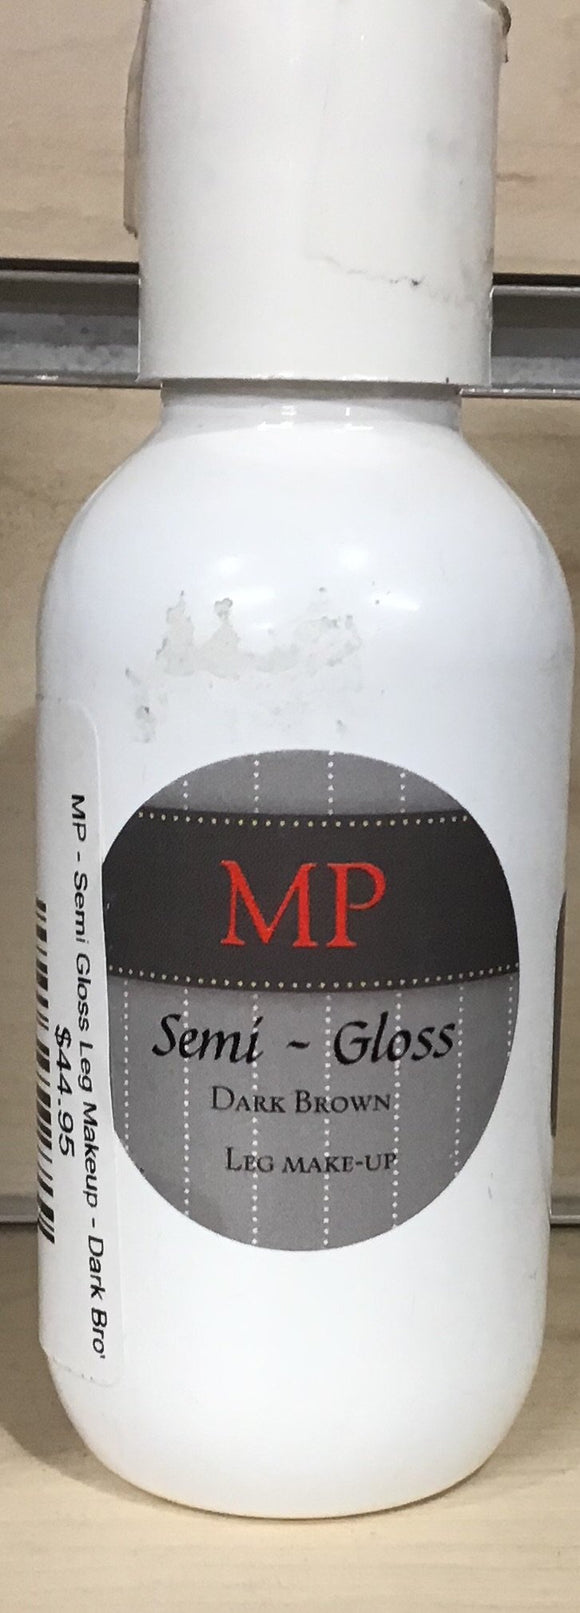 MP - Semi Gloss Leg Makeup - Dark Brown Grooming